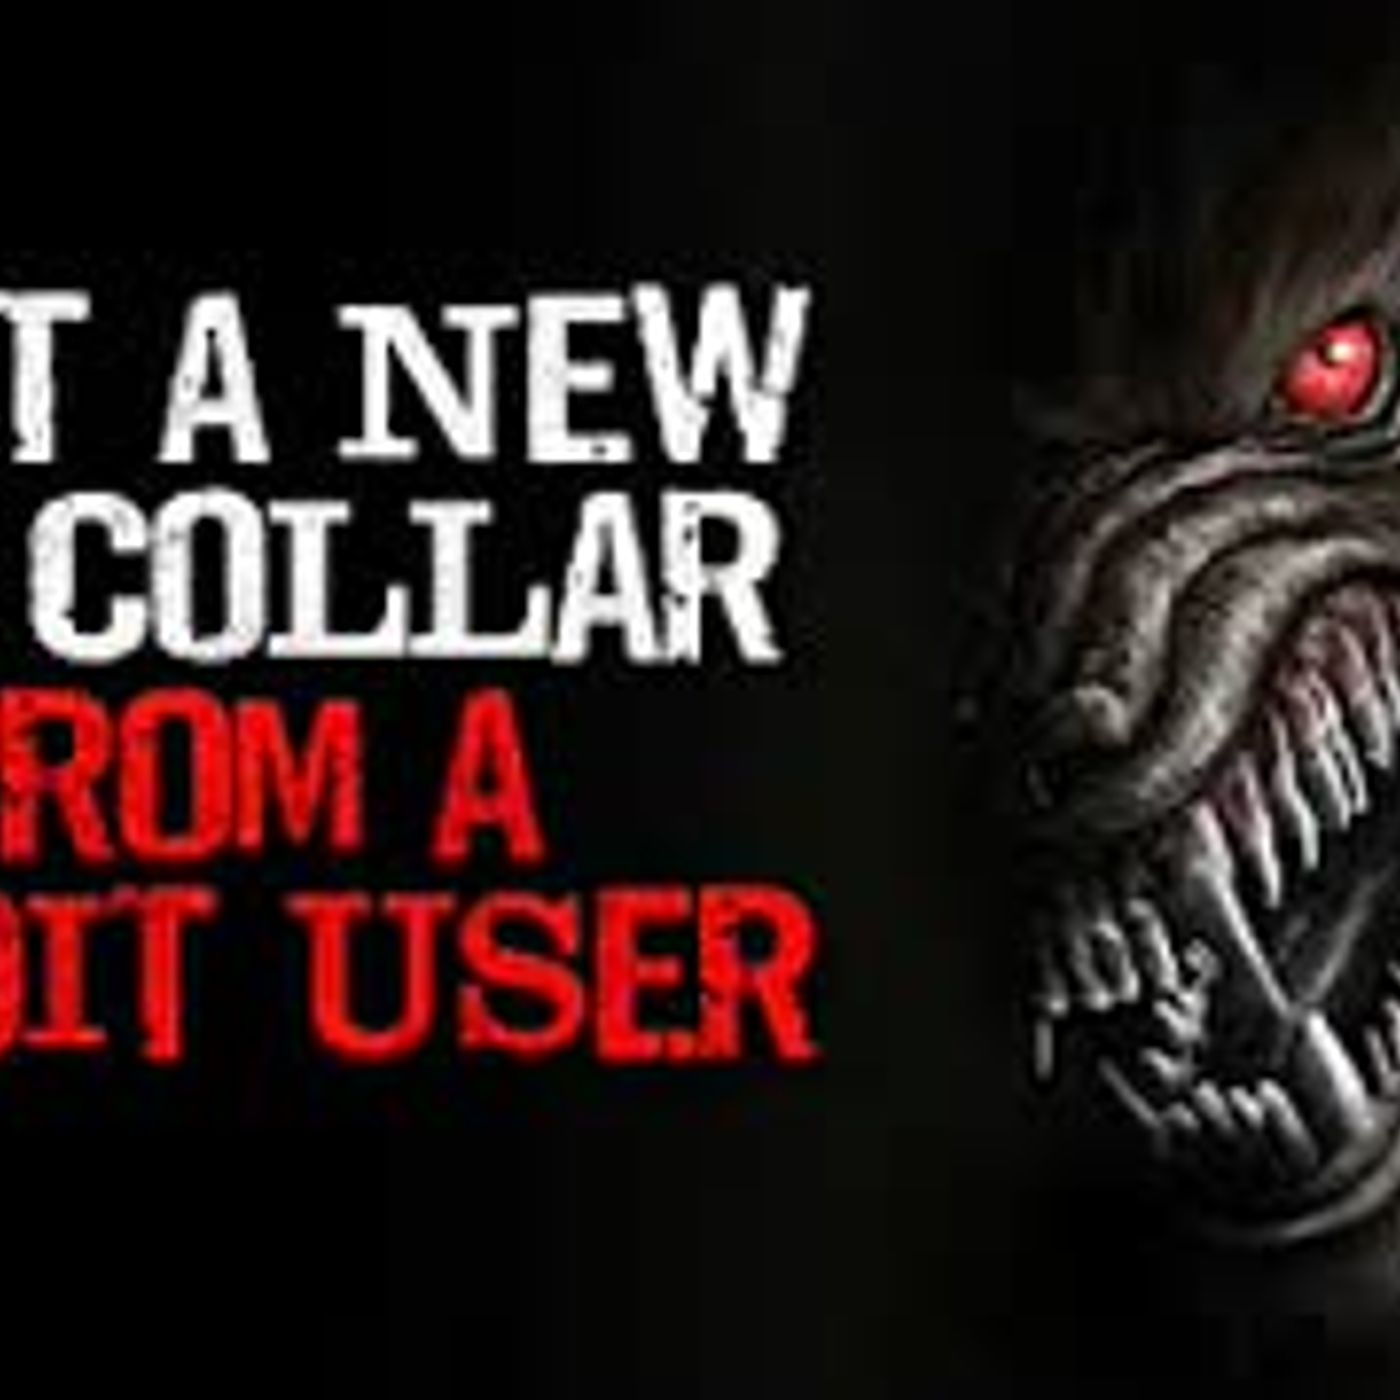 """I got a new dog collar from a reddit user"" Creepypasta"